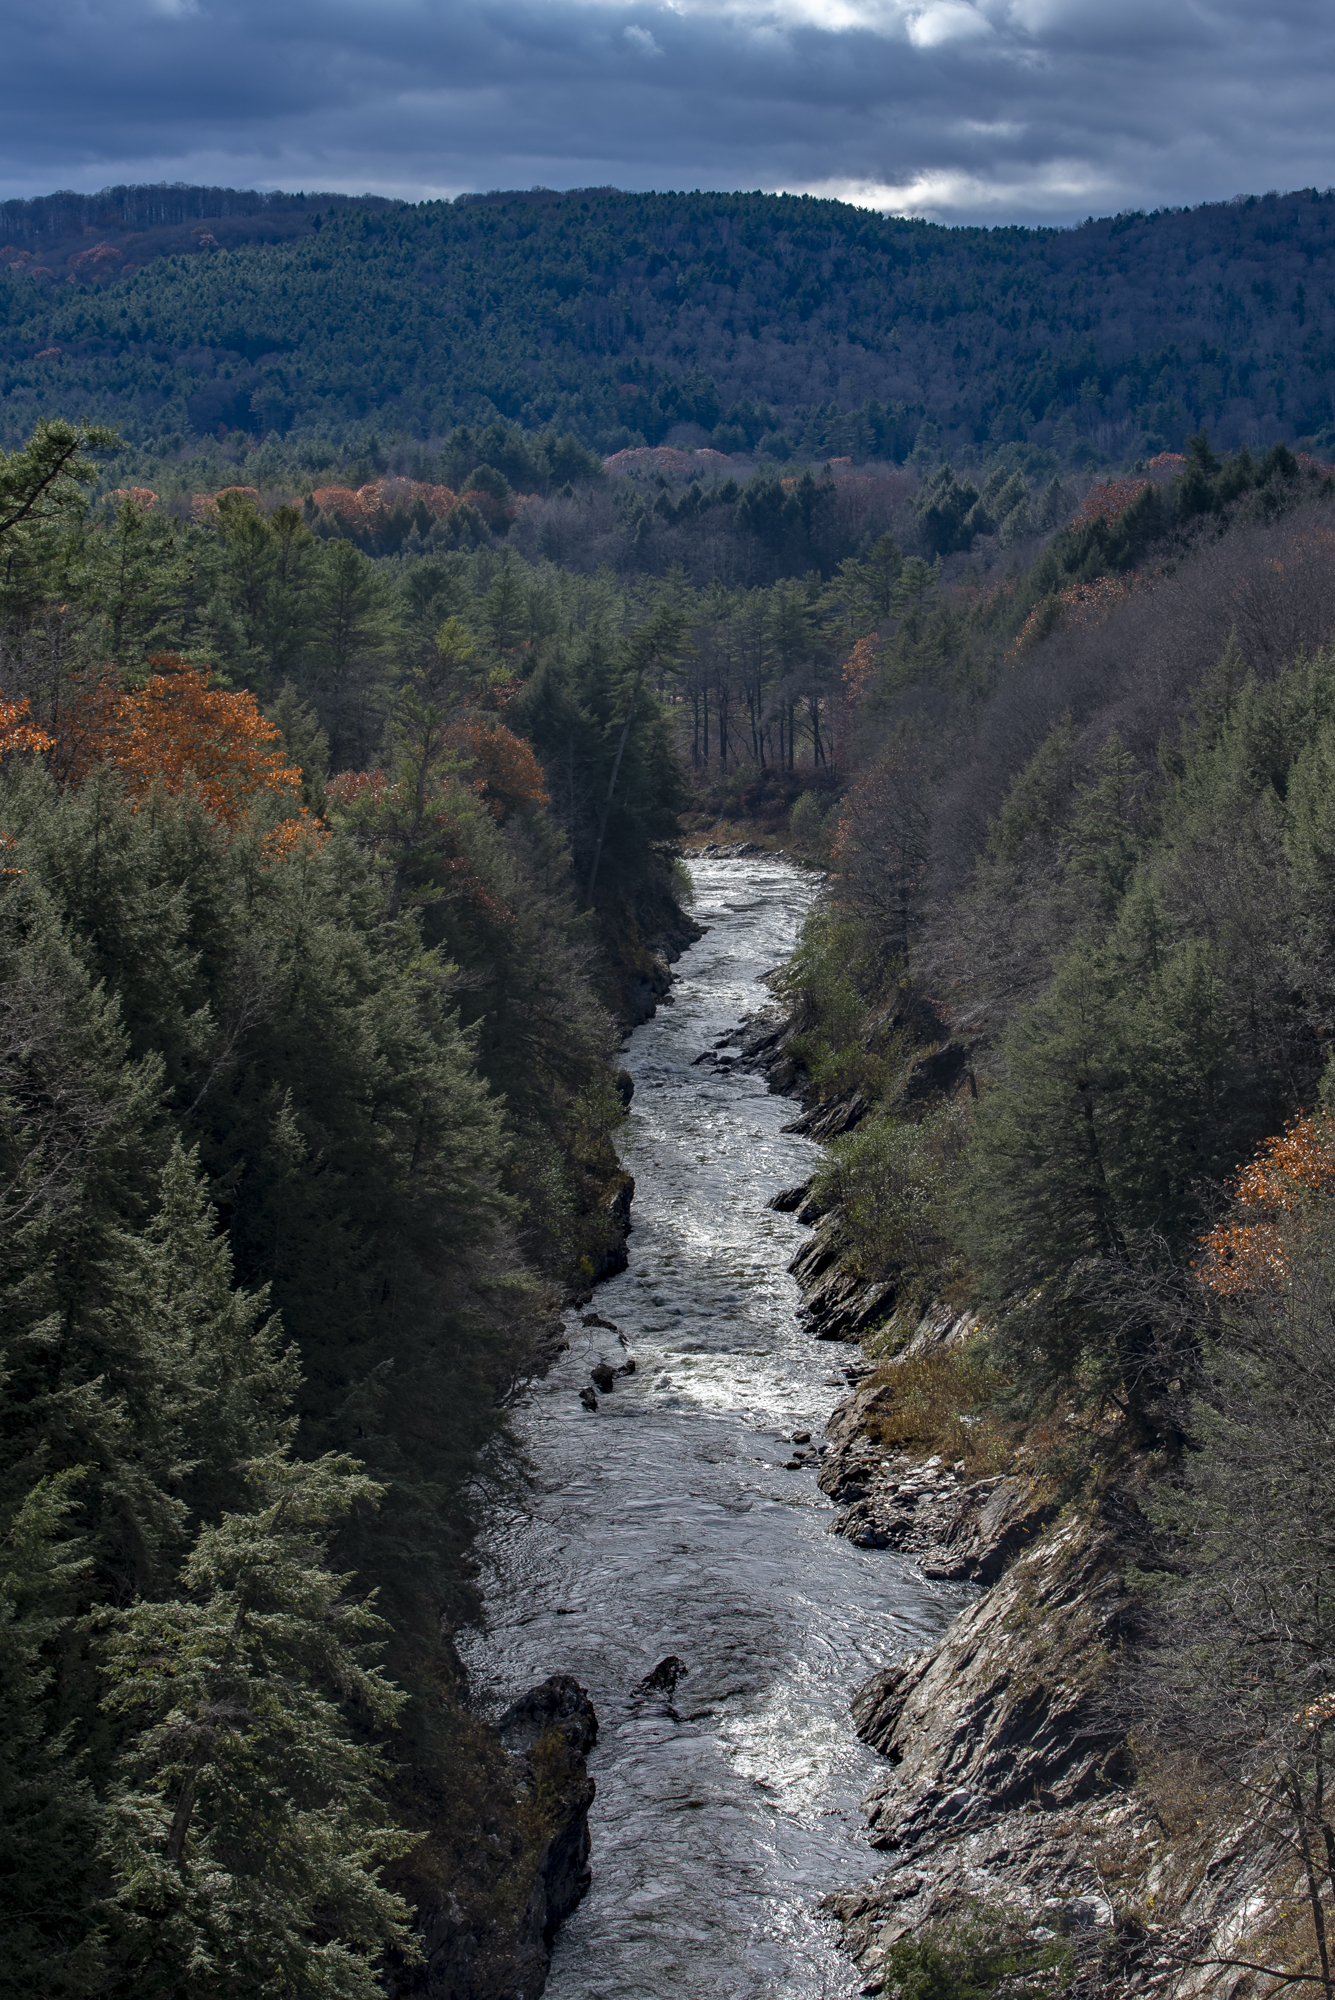 Gorge from the bridge